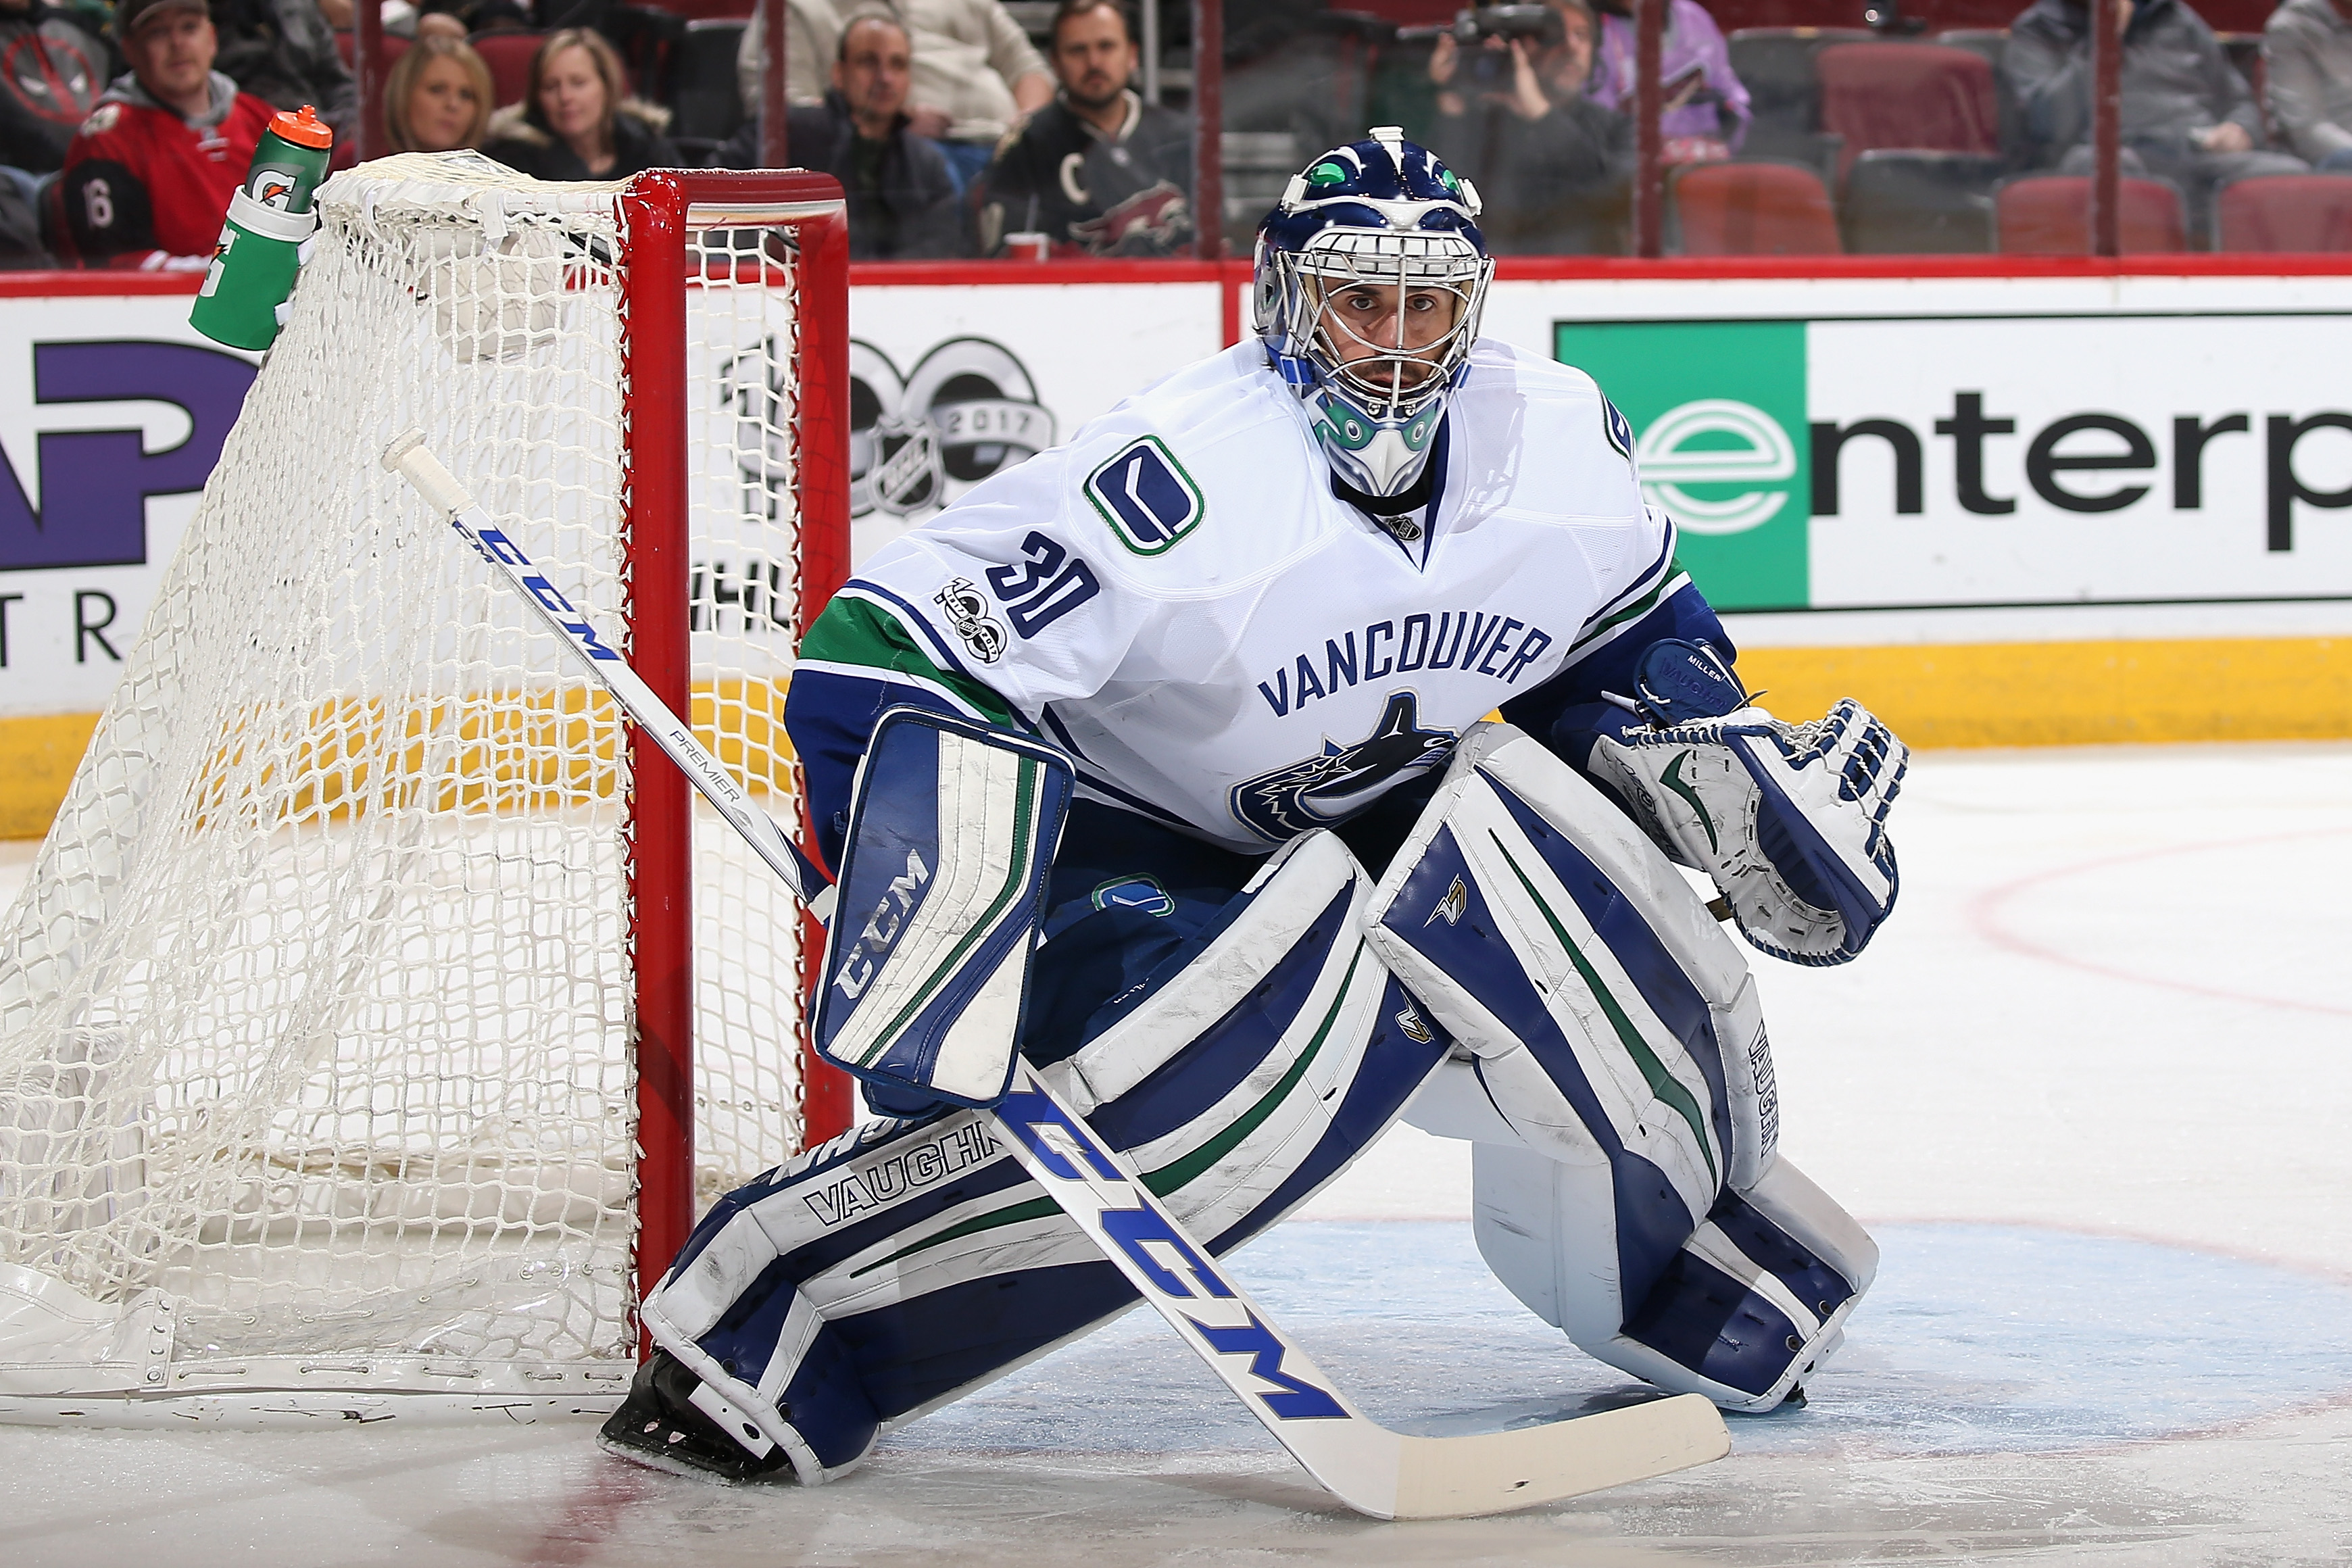 Ryan Miller's next victory will put him 19th on the NHL's all-time list. (Getty Images)